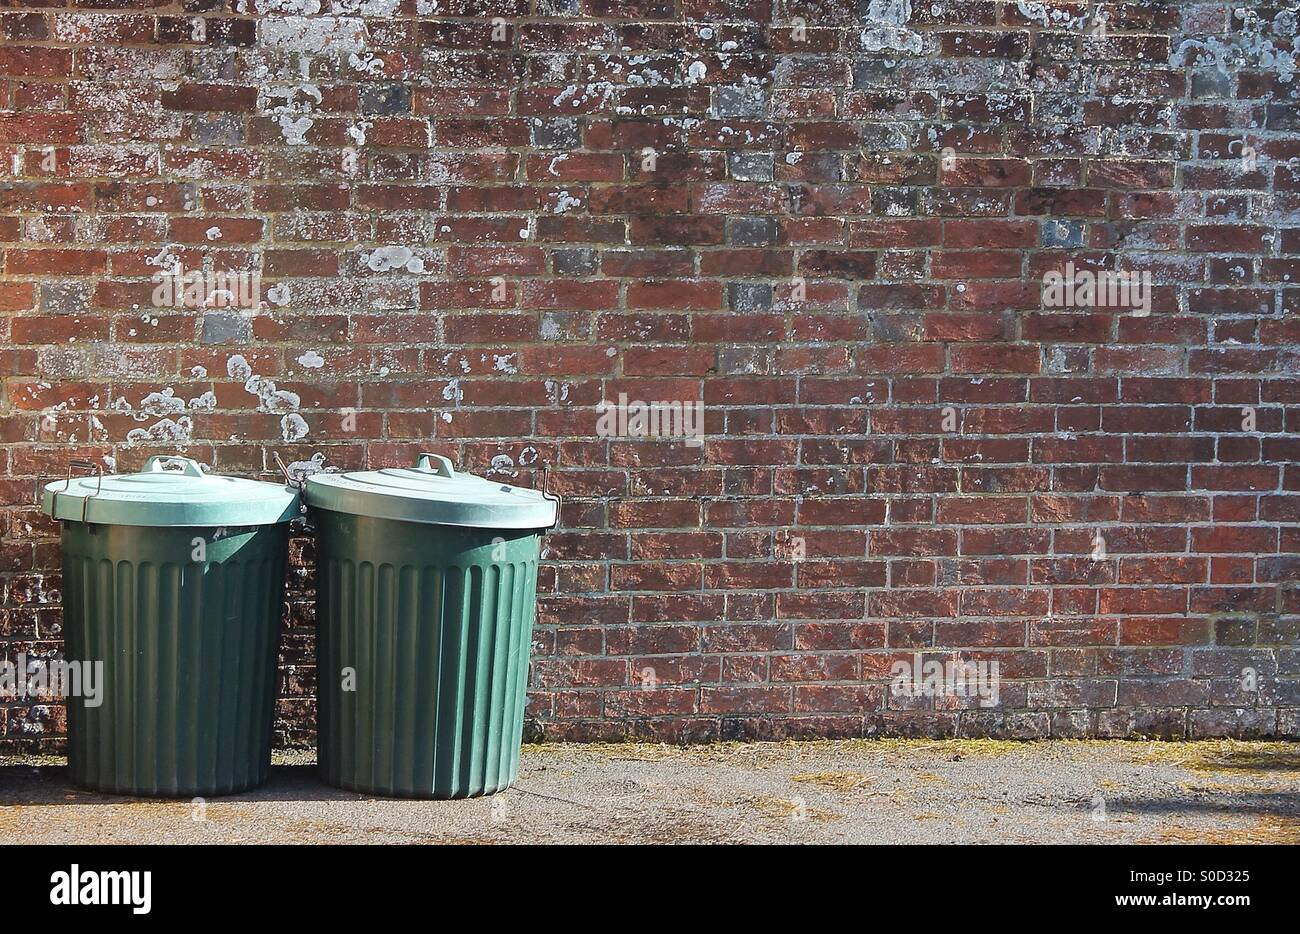 Trash can rubbish dustbins garbage can by brick wall copy space background Stock Photo